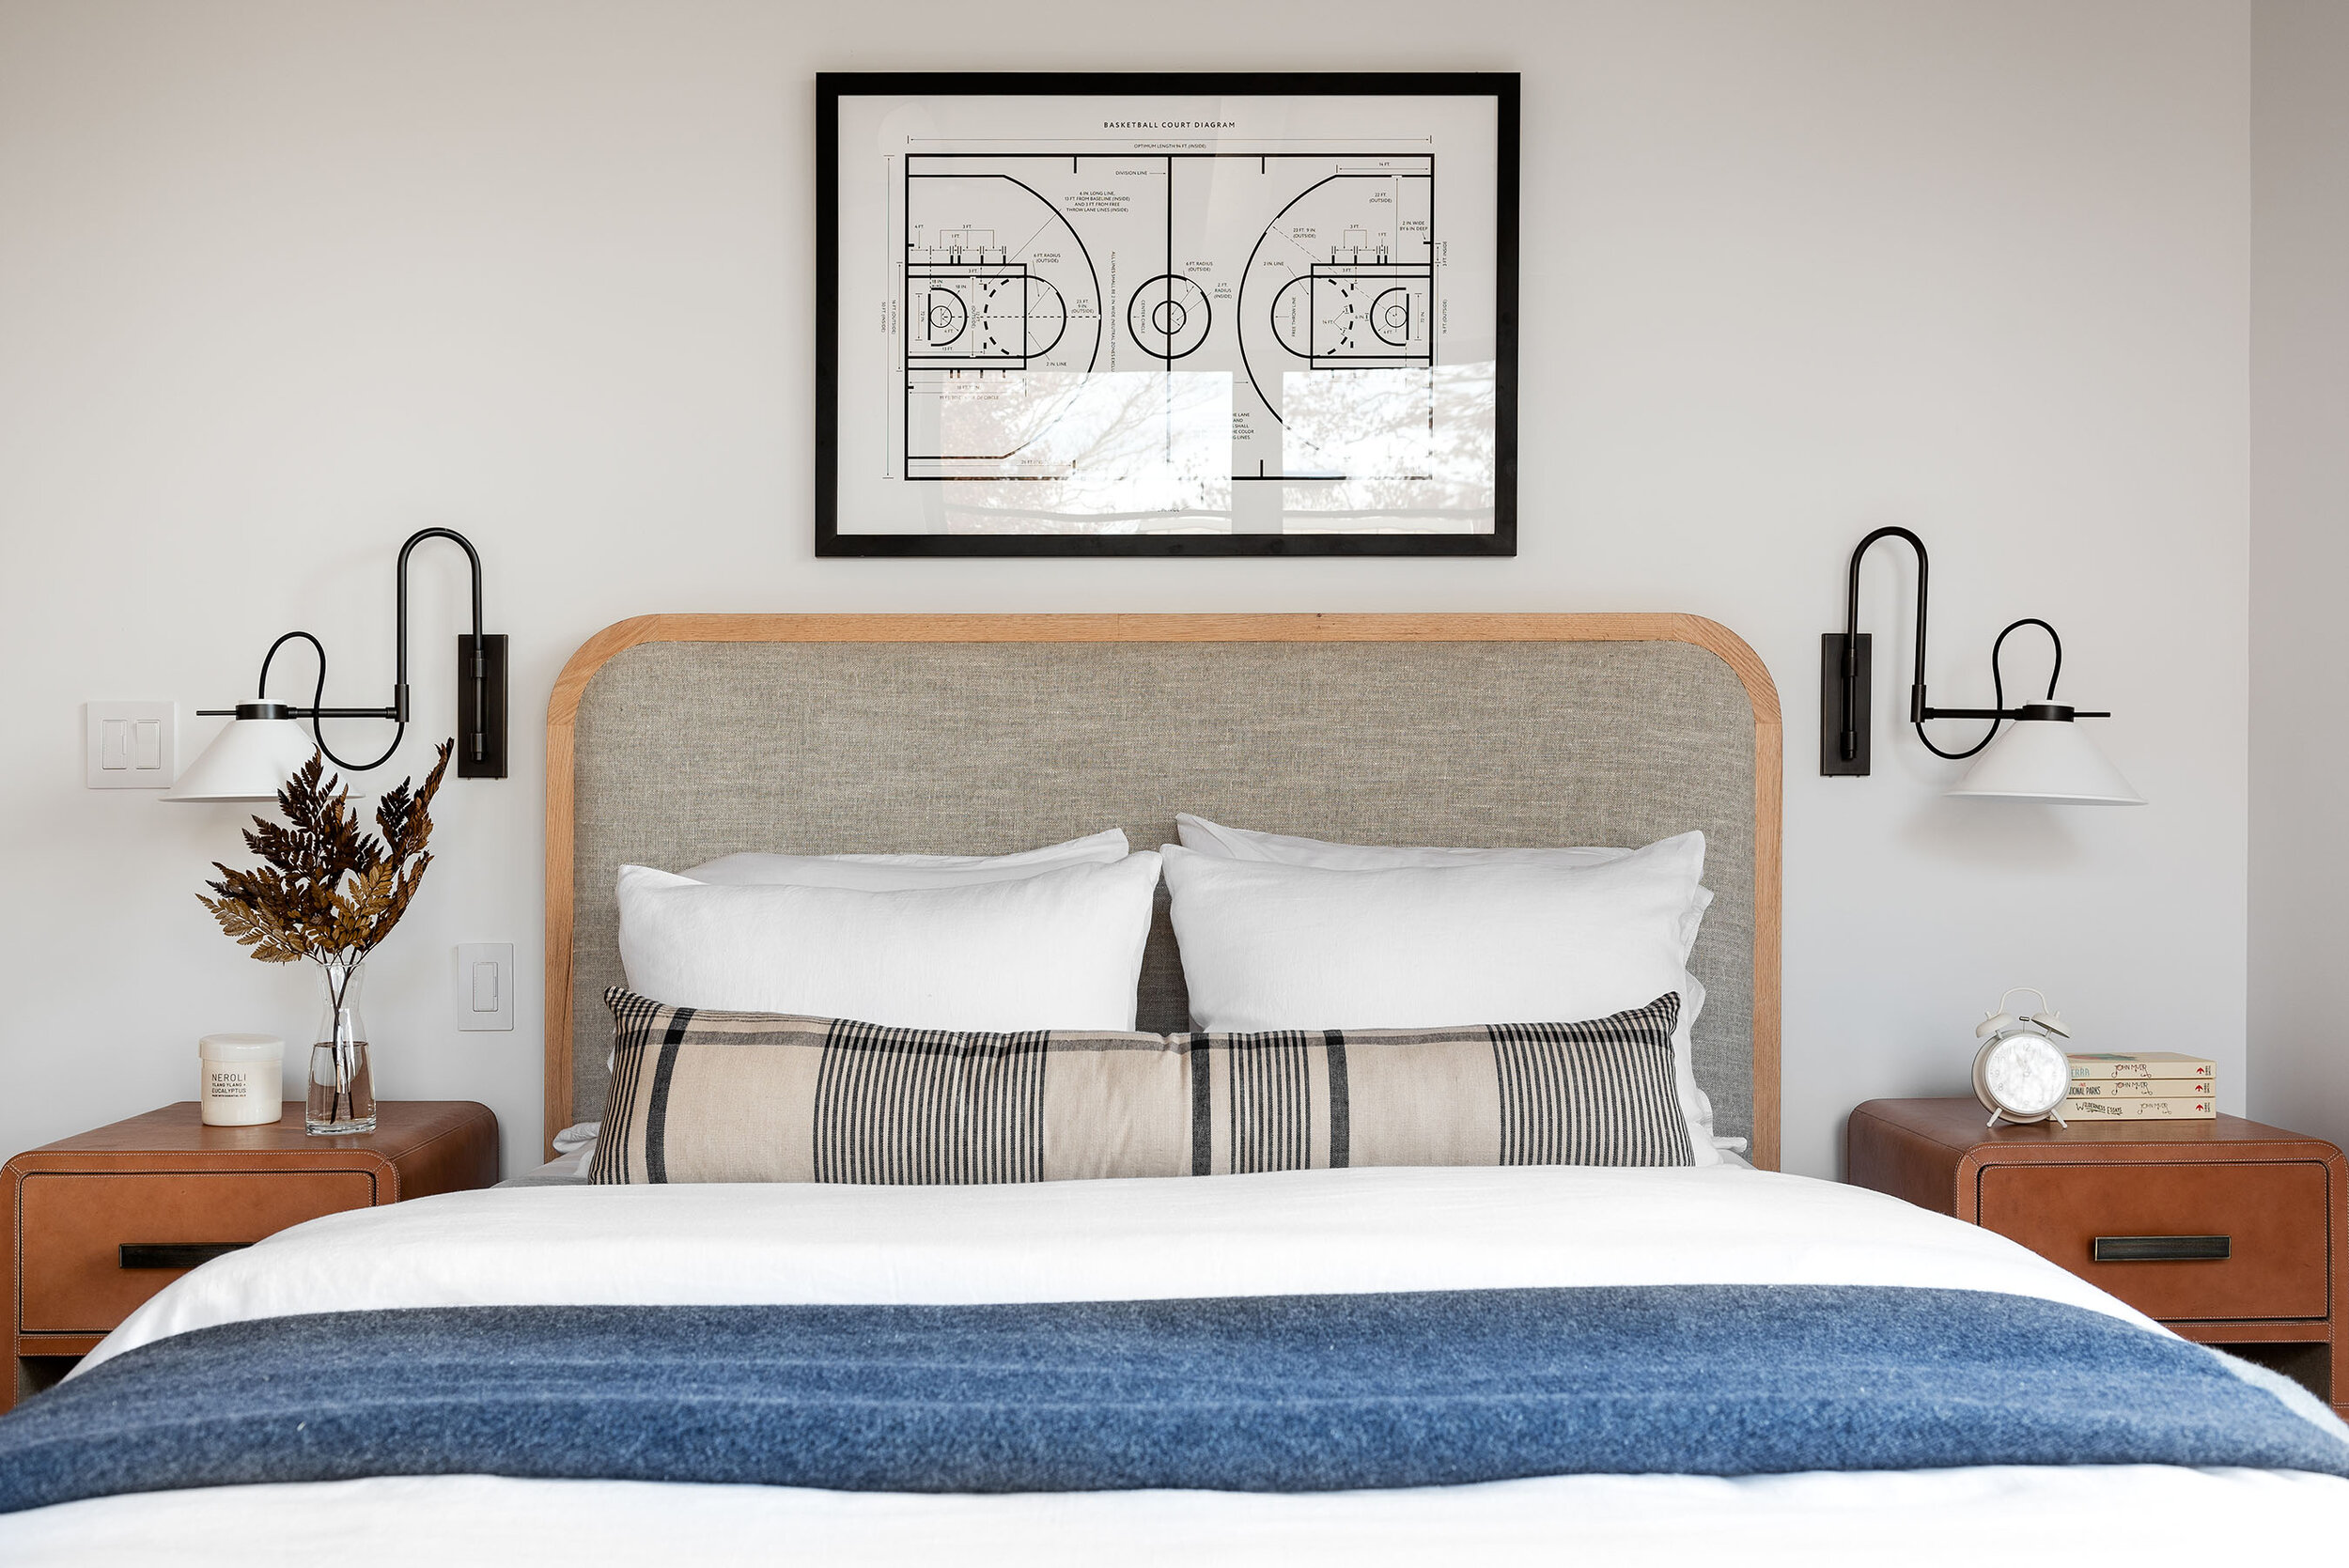 5 Easy Ideas for Decorating the Area Above Your Bed